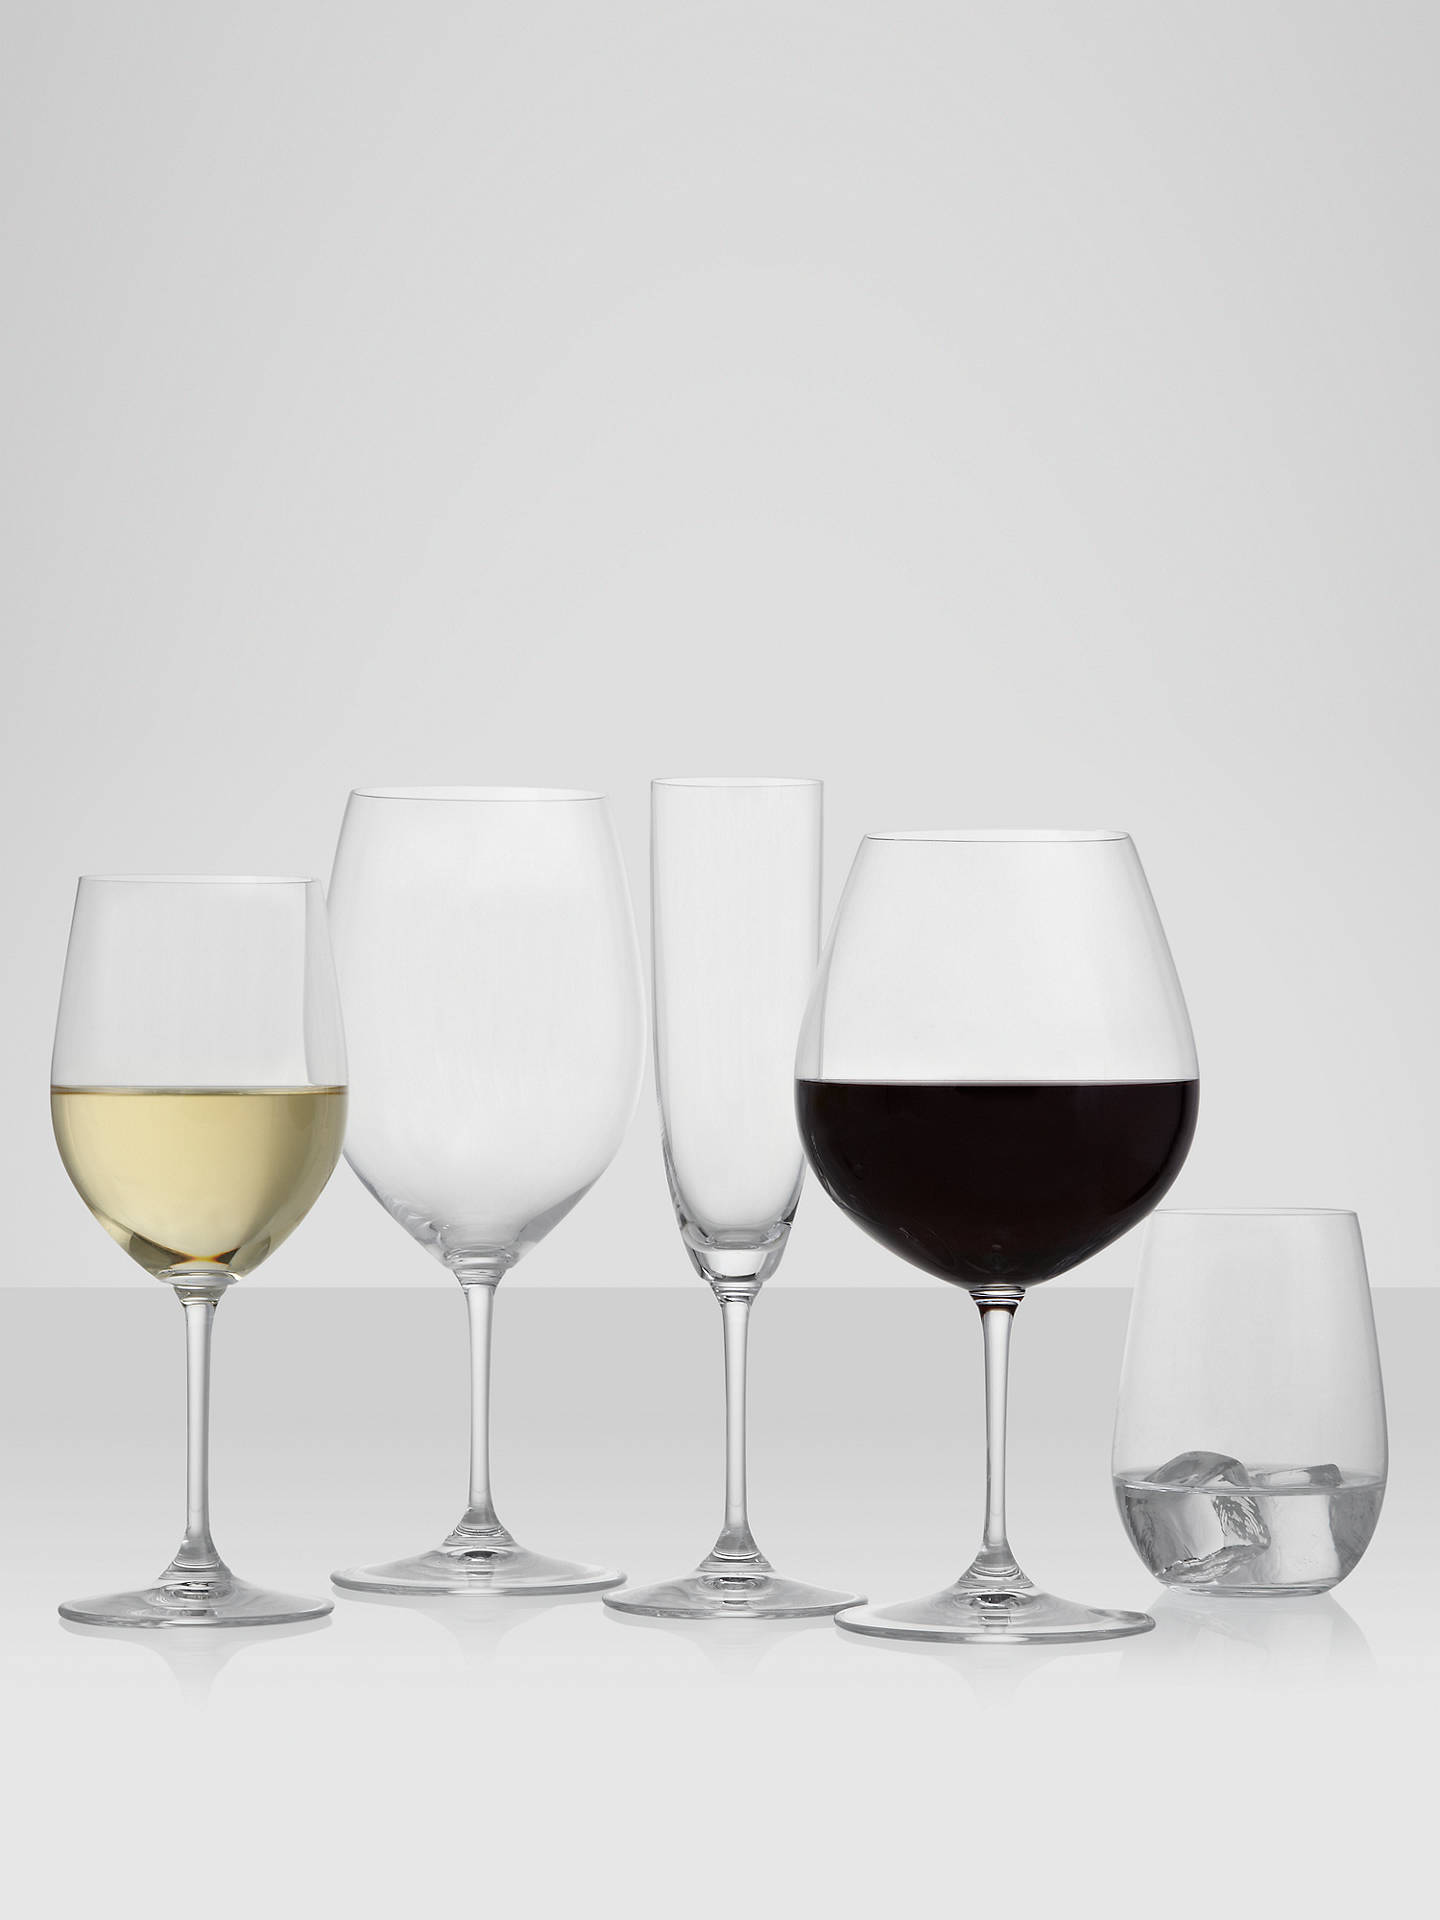 Buy Riedel Vinum Pinot Noir Red Wine Glasses, Set of 2 Online at johnlewis.com